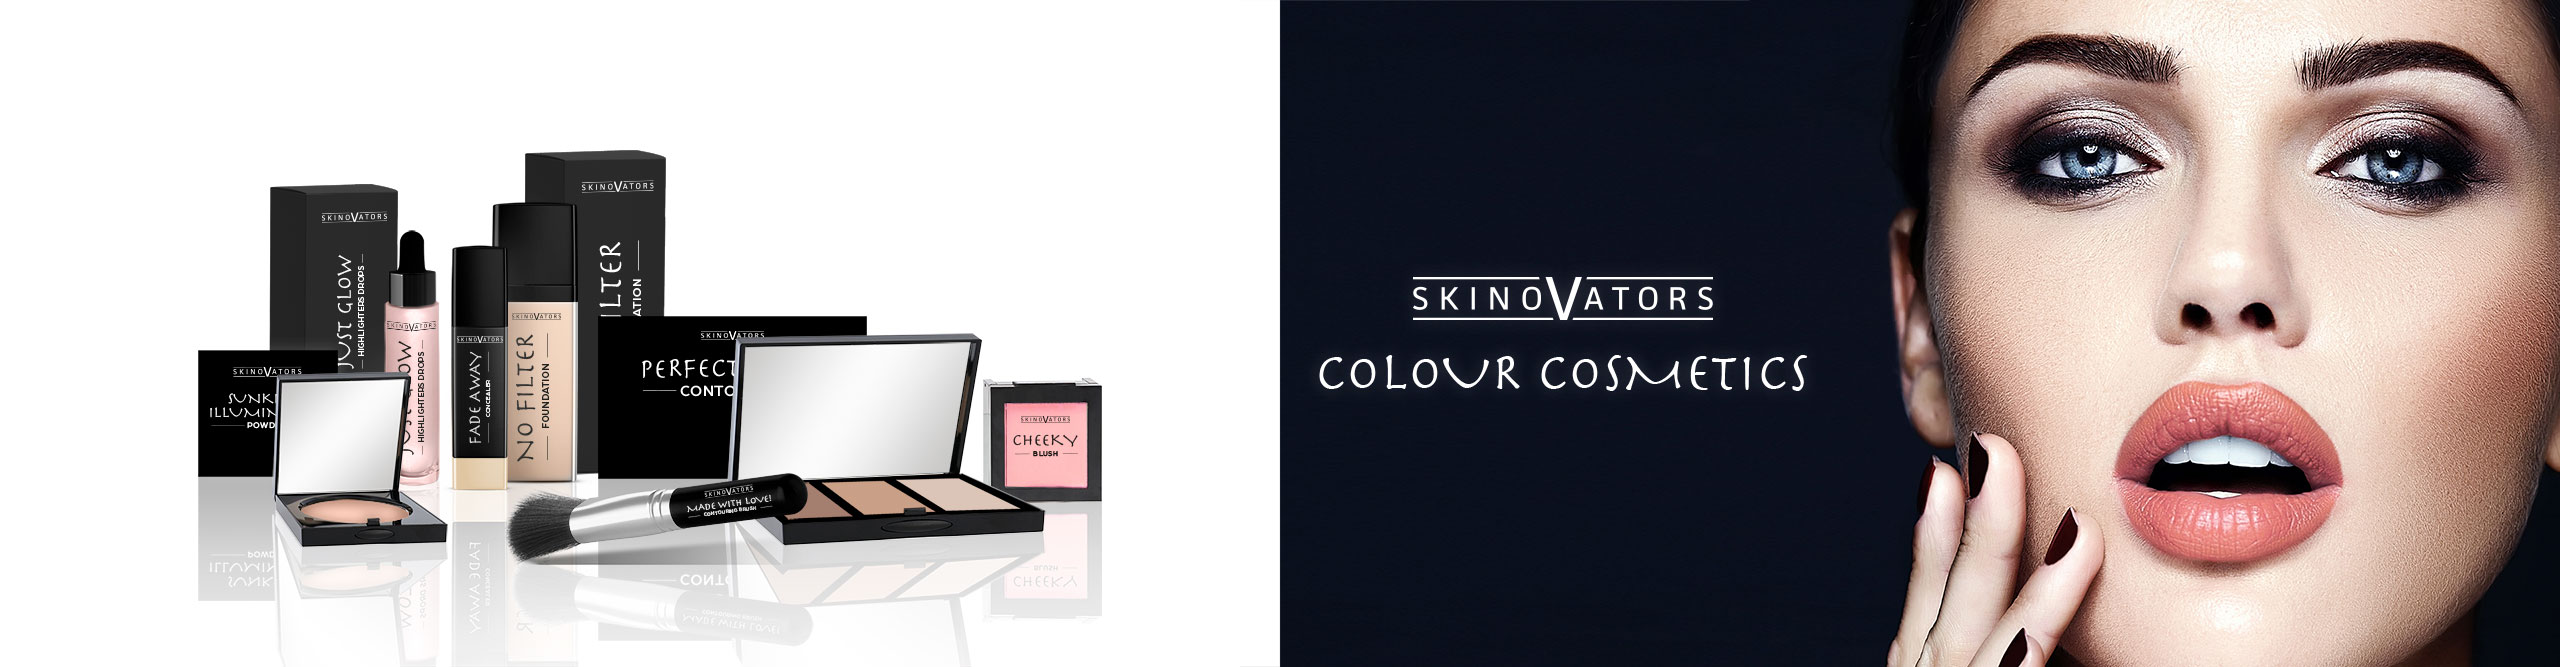 SKINOVATORS GmbH | Private Label Cosmetics and Skin Care Germany